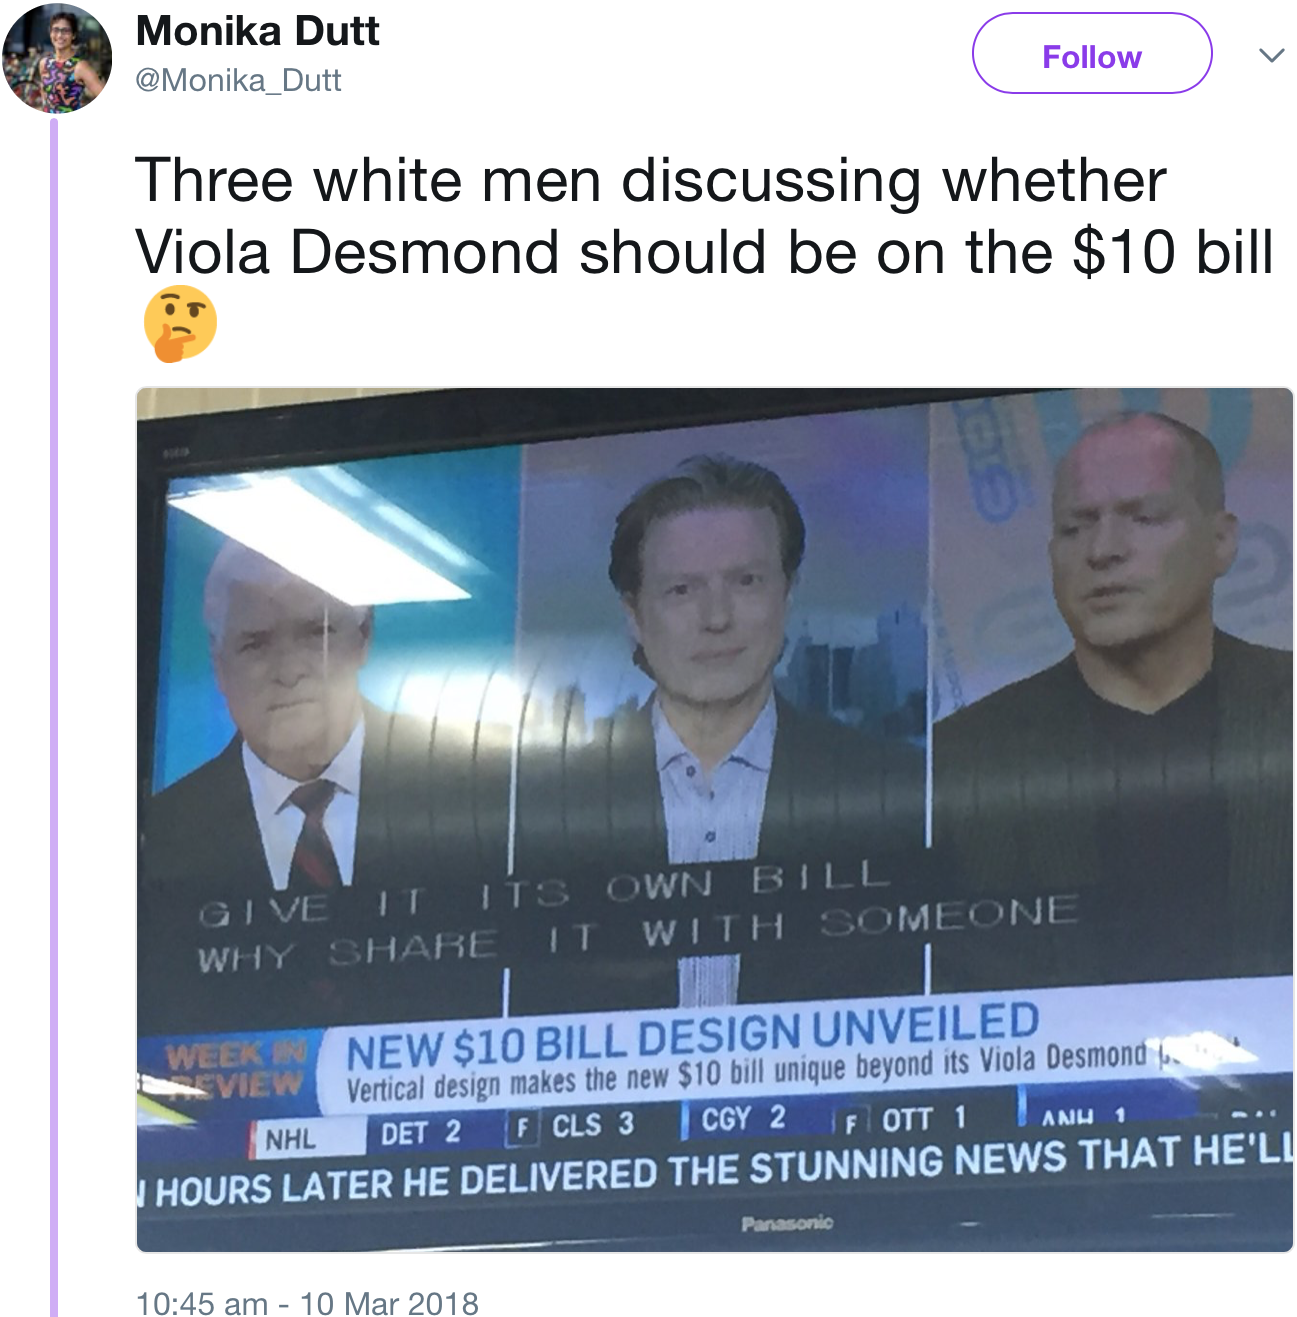 Left to right: a white guy with white hair, another white guy who really likes the new vertical design of the bill, a balding white guy. Missing: a woman who can discuss the importance of Viola Desmond to Canadian history and what it means to have her likeness on the $10 bill.